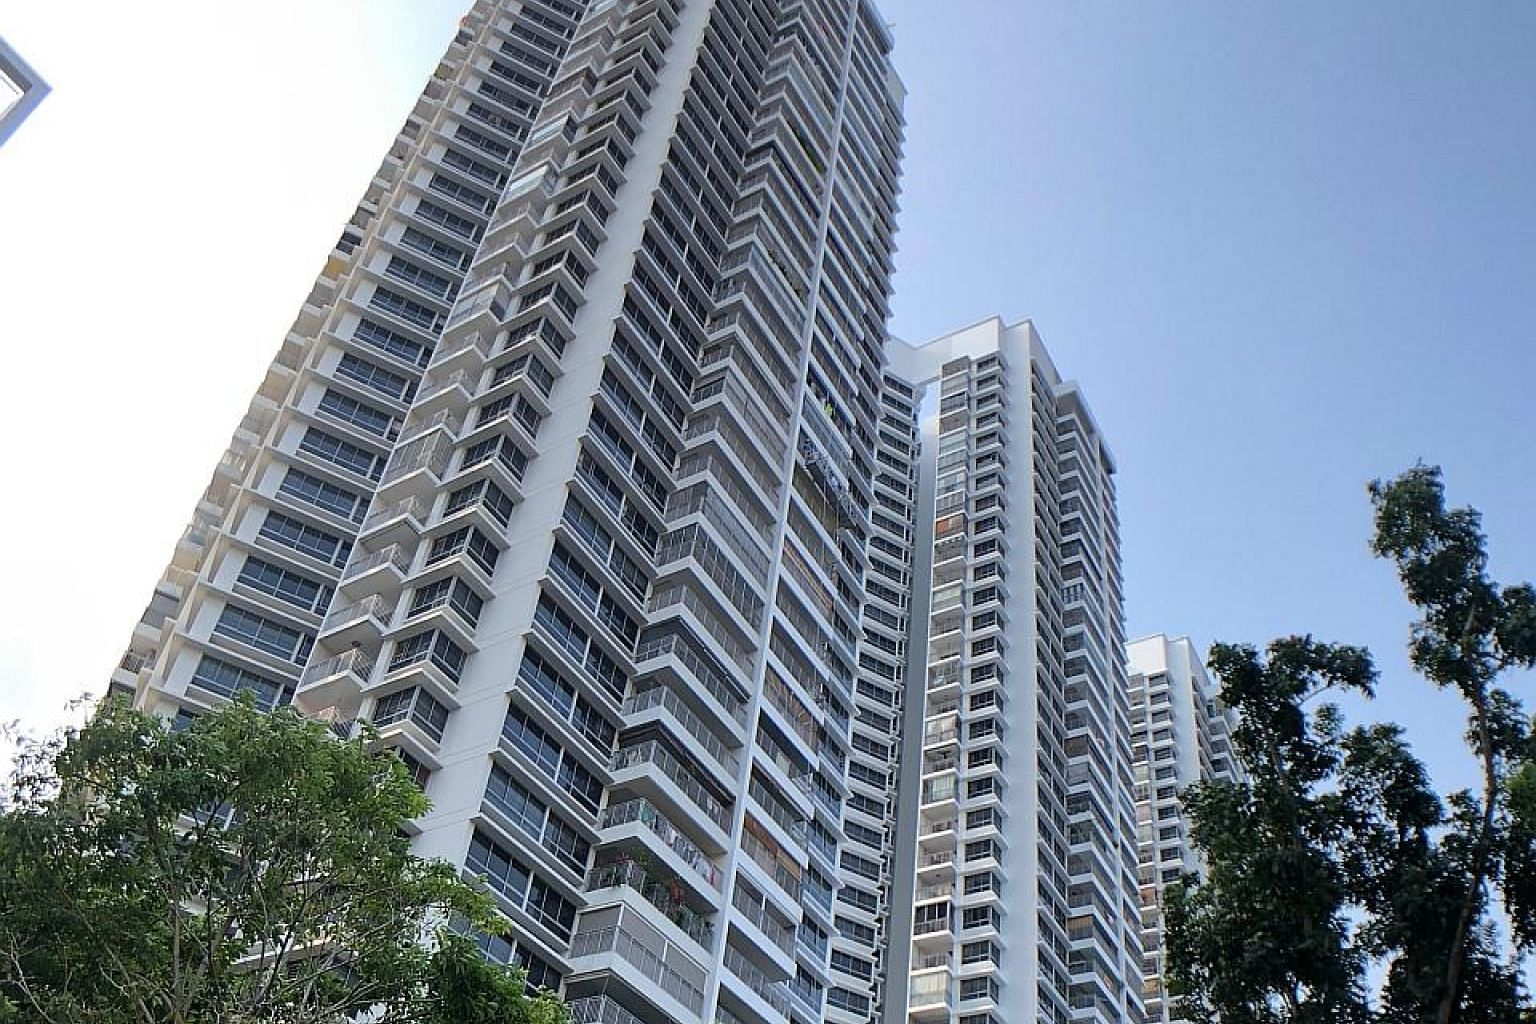 The City View @ Boon Keng unit sold for $5,000 more than the previous record for a HDB resale, set by a five-room flat in Tiong Bahru, in April. Five of the nine flats sold there this year went for over a million dollars.